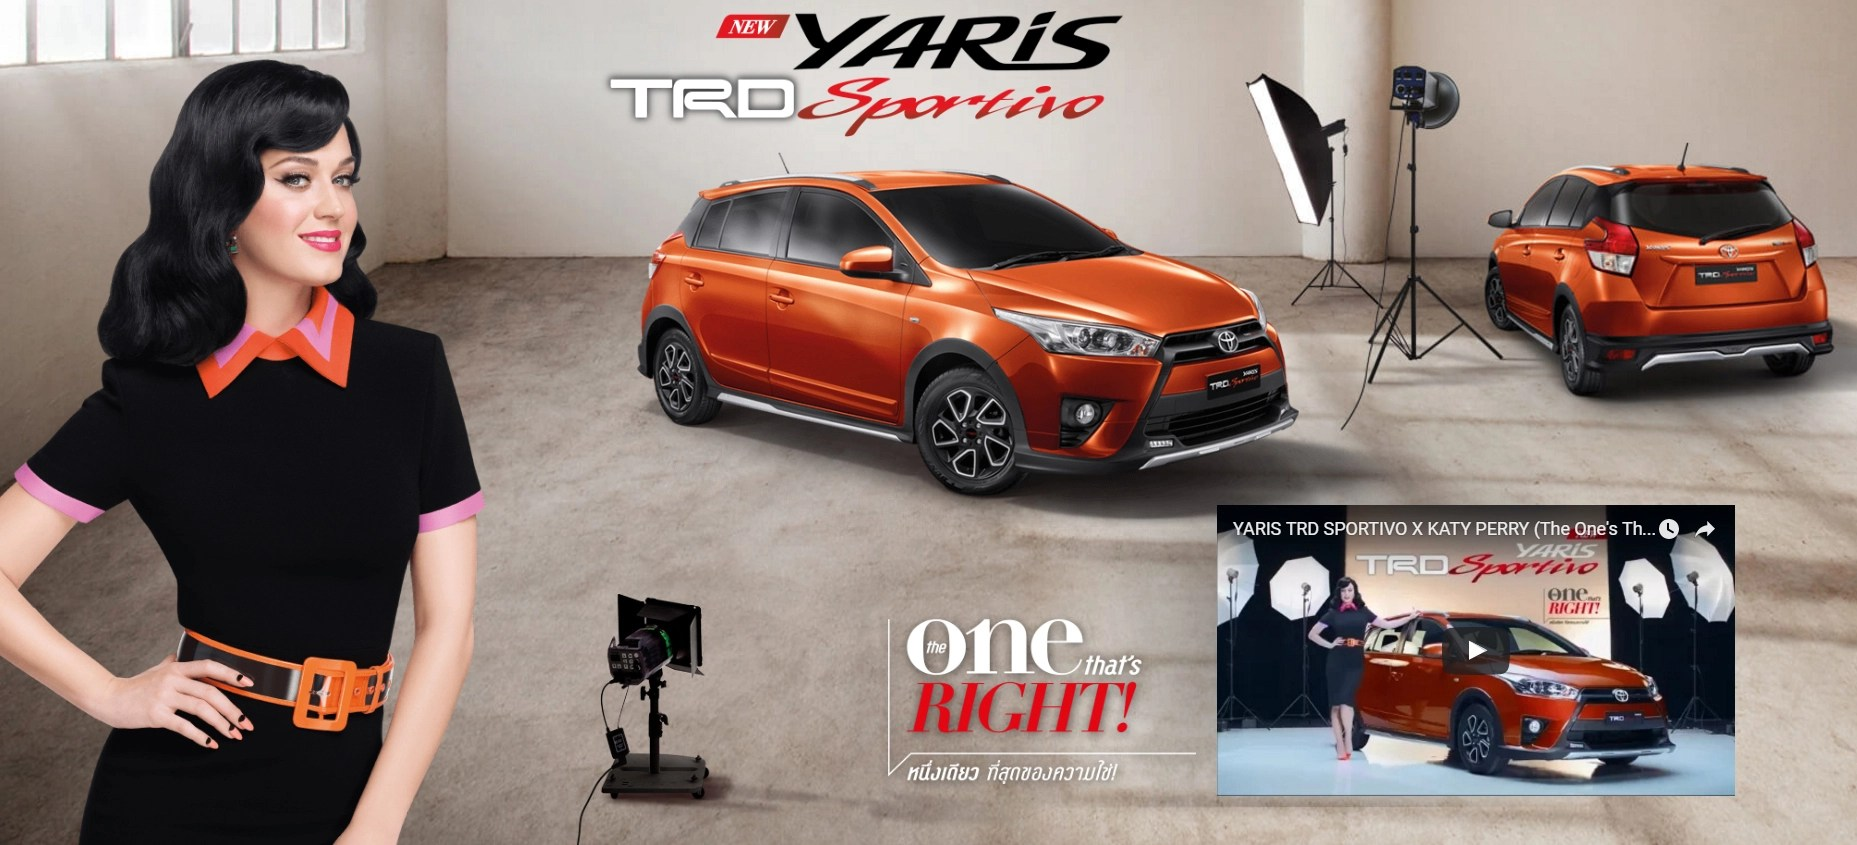 toyota yaris trd sportivo 2017 new 2016 revealed for thailand image